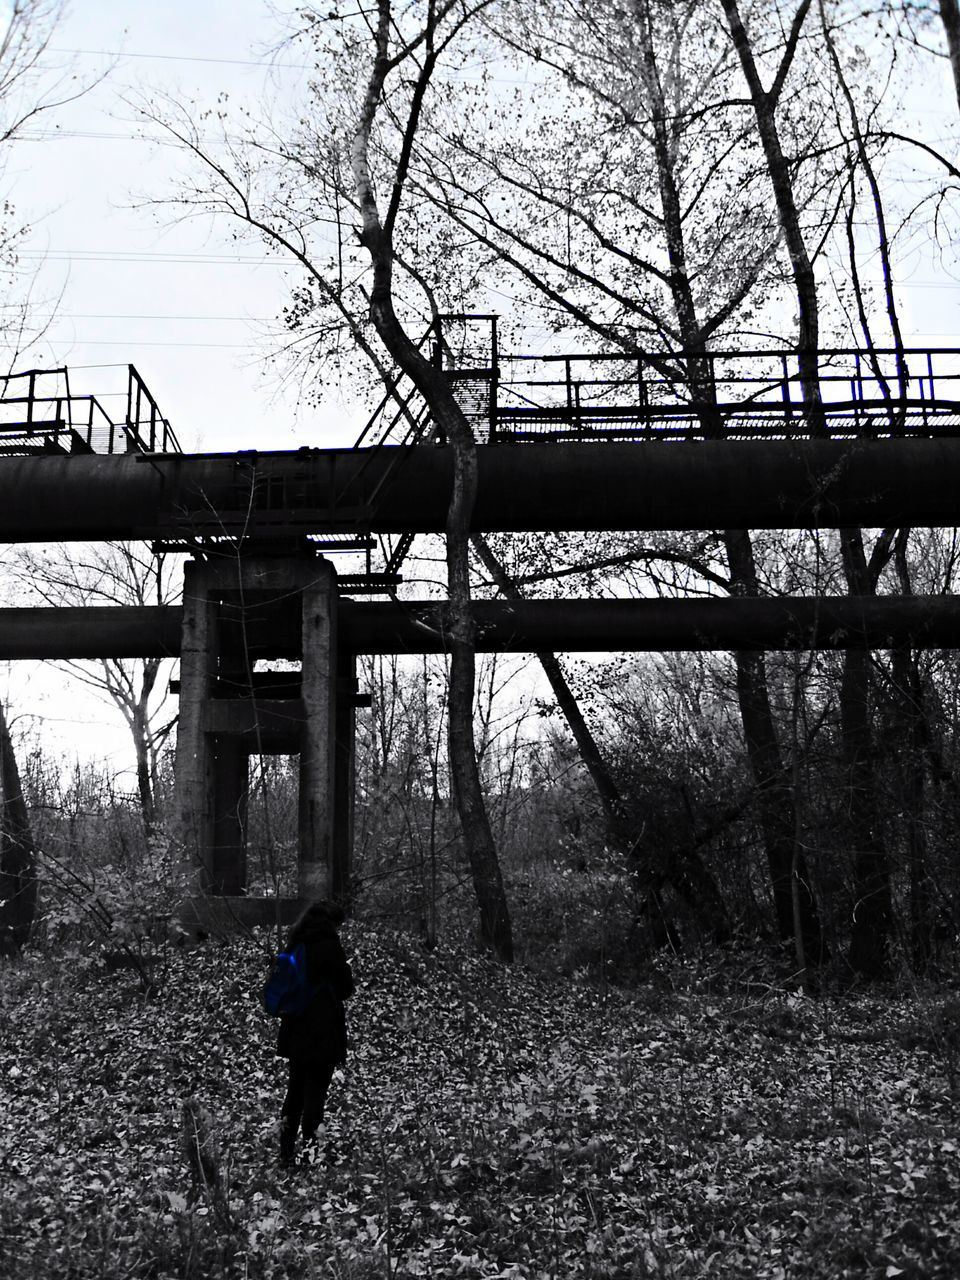 bridge - man made structure, connection, tree, full length, day, one person, walking, real people, architecture, built structure, rear view, bare tree, outdoors, branch, men, nature, standing, lifestyles, under, sky, people